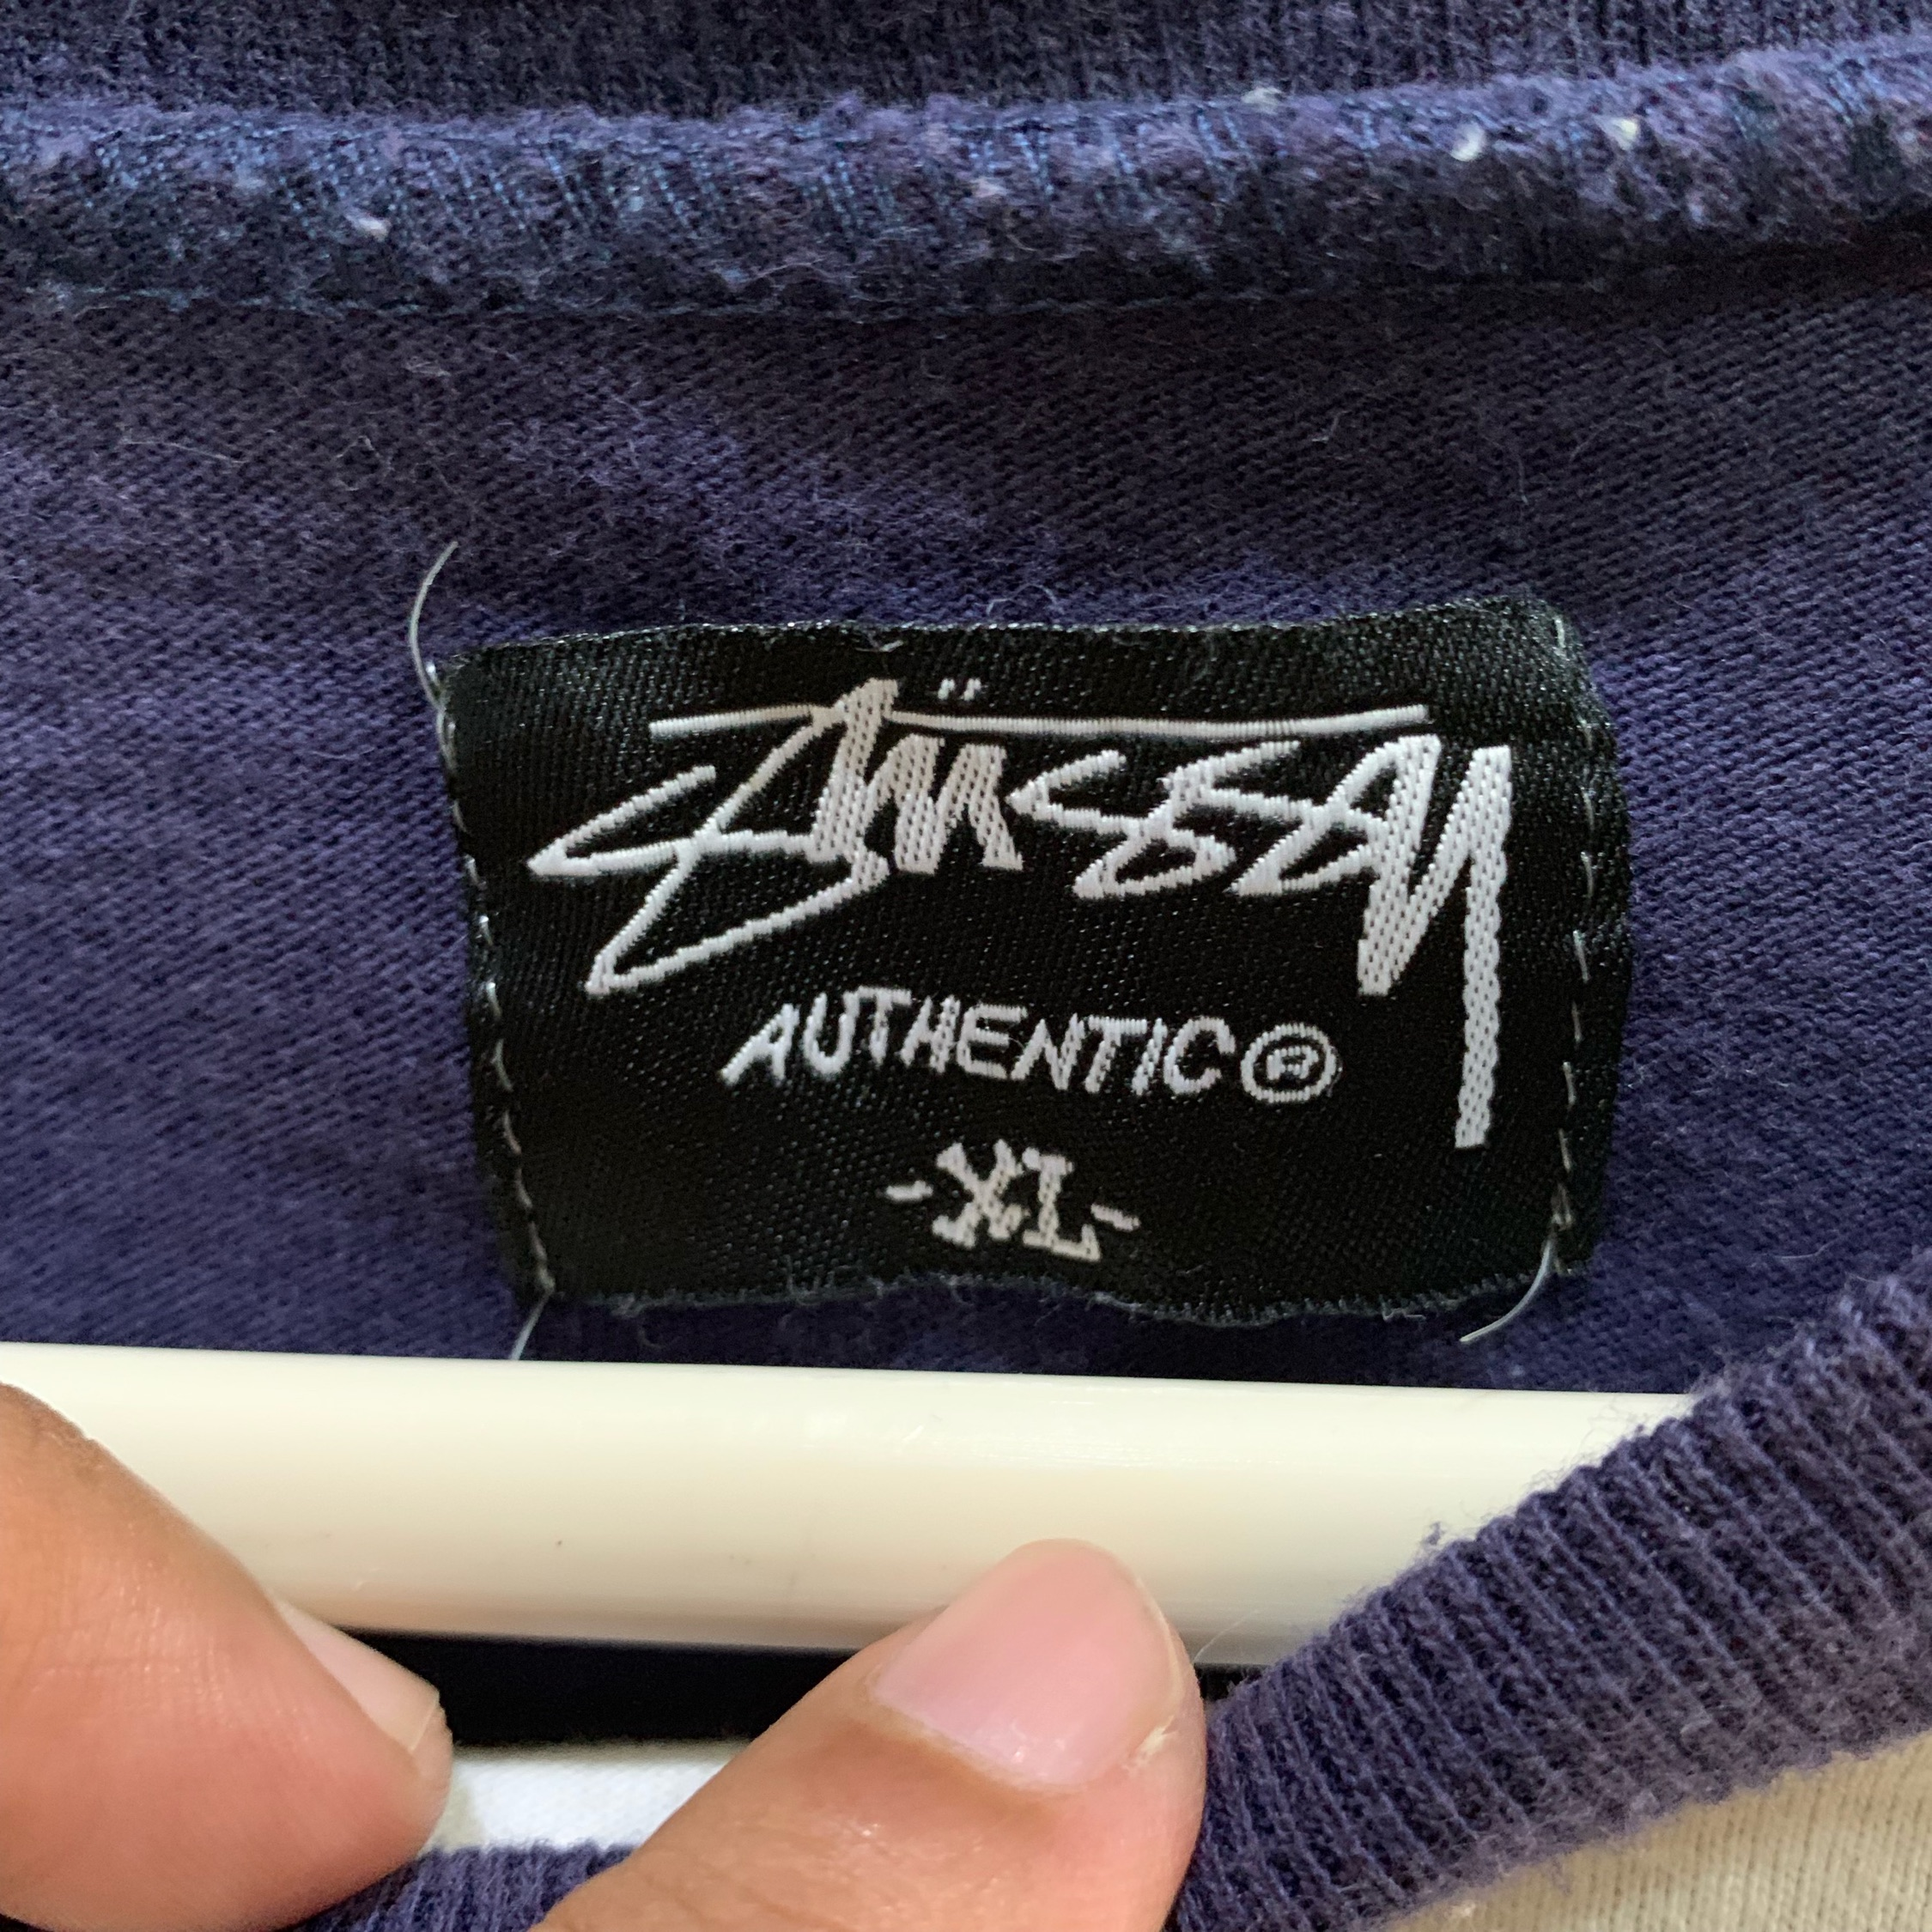 Stussy Authentic Long Sleeve Tee Size Xl Fits L